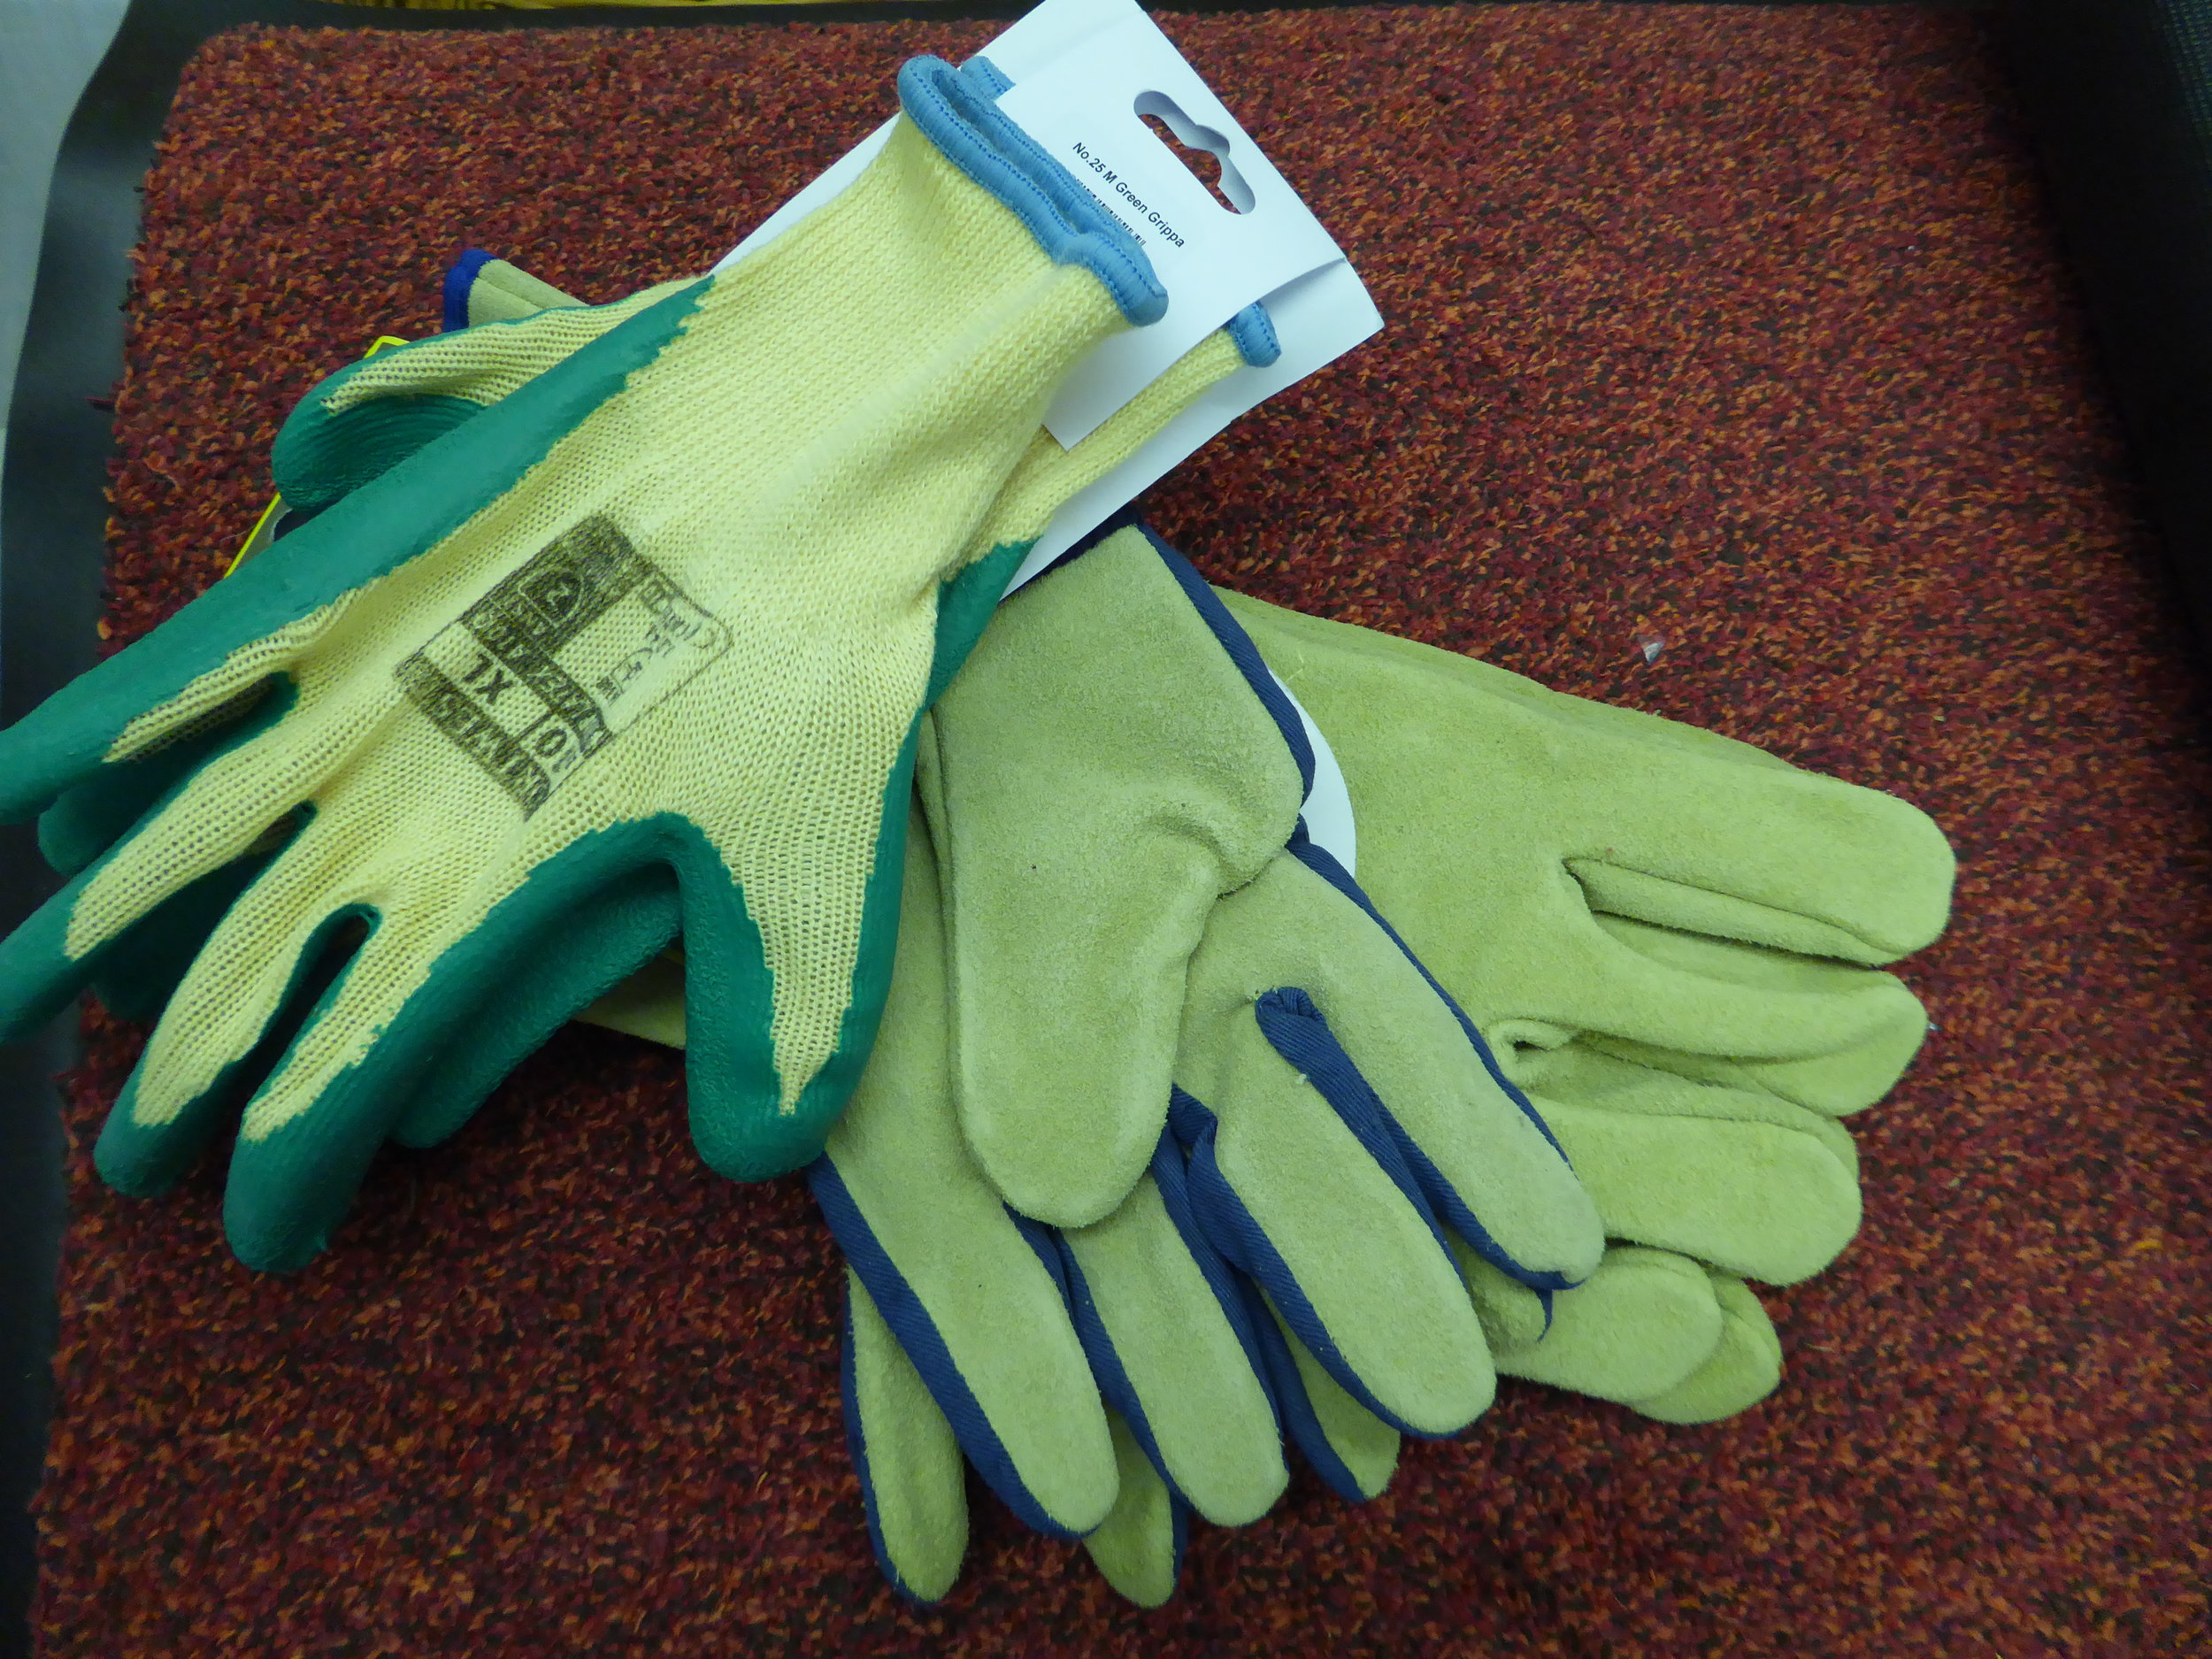 Don't forget your gardening gloves!